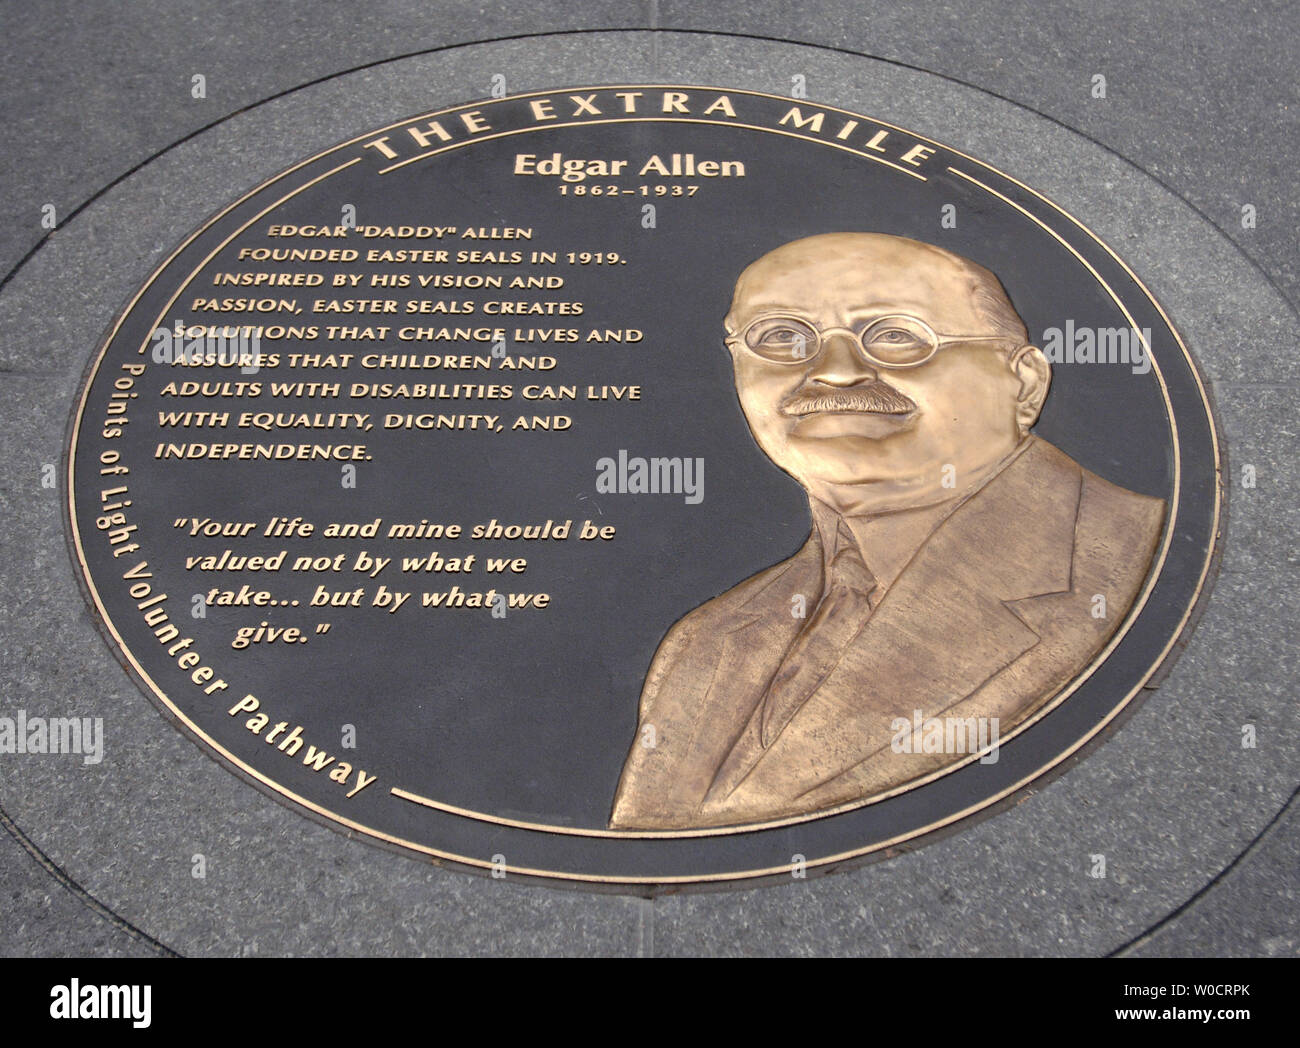 A medallion honoring the lifetime service of Edgar Allen at the Extra Mile monument unveiling, in Washington on Oct. 14, 2005. The Extra Mile is a one mile long walk throughout downtown Northwest studded with bronze medallions honoring 70 Americans who gave their life to serving others (UPI Photo/Kevin Dietsch) Stock Photo